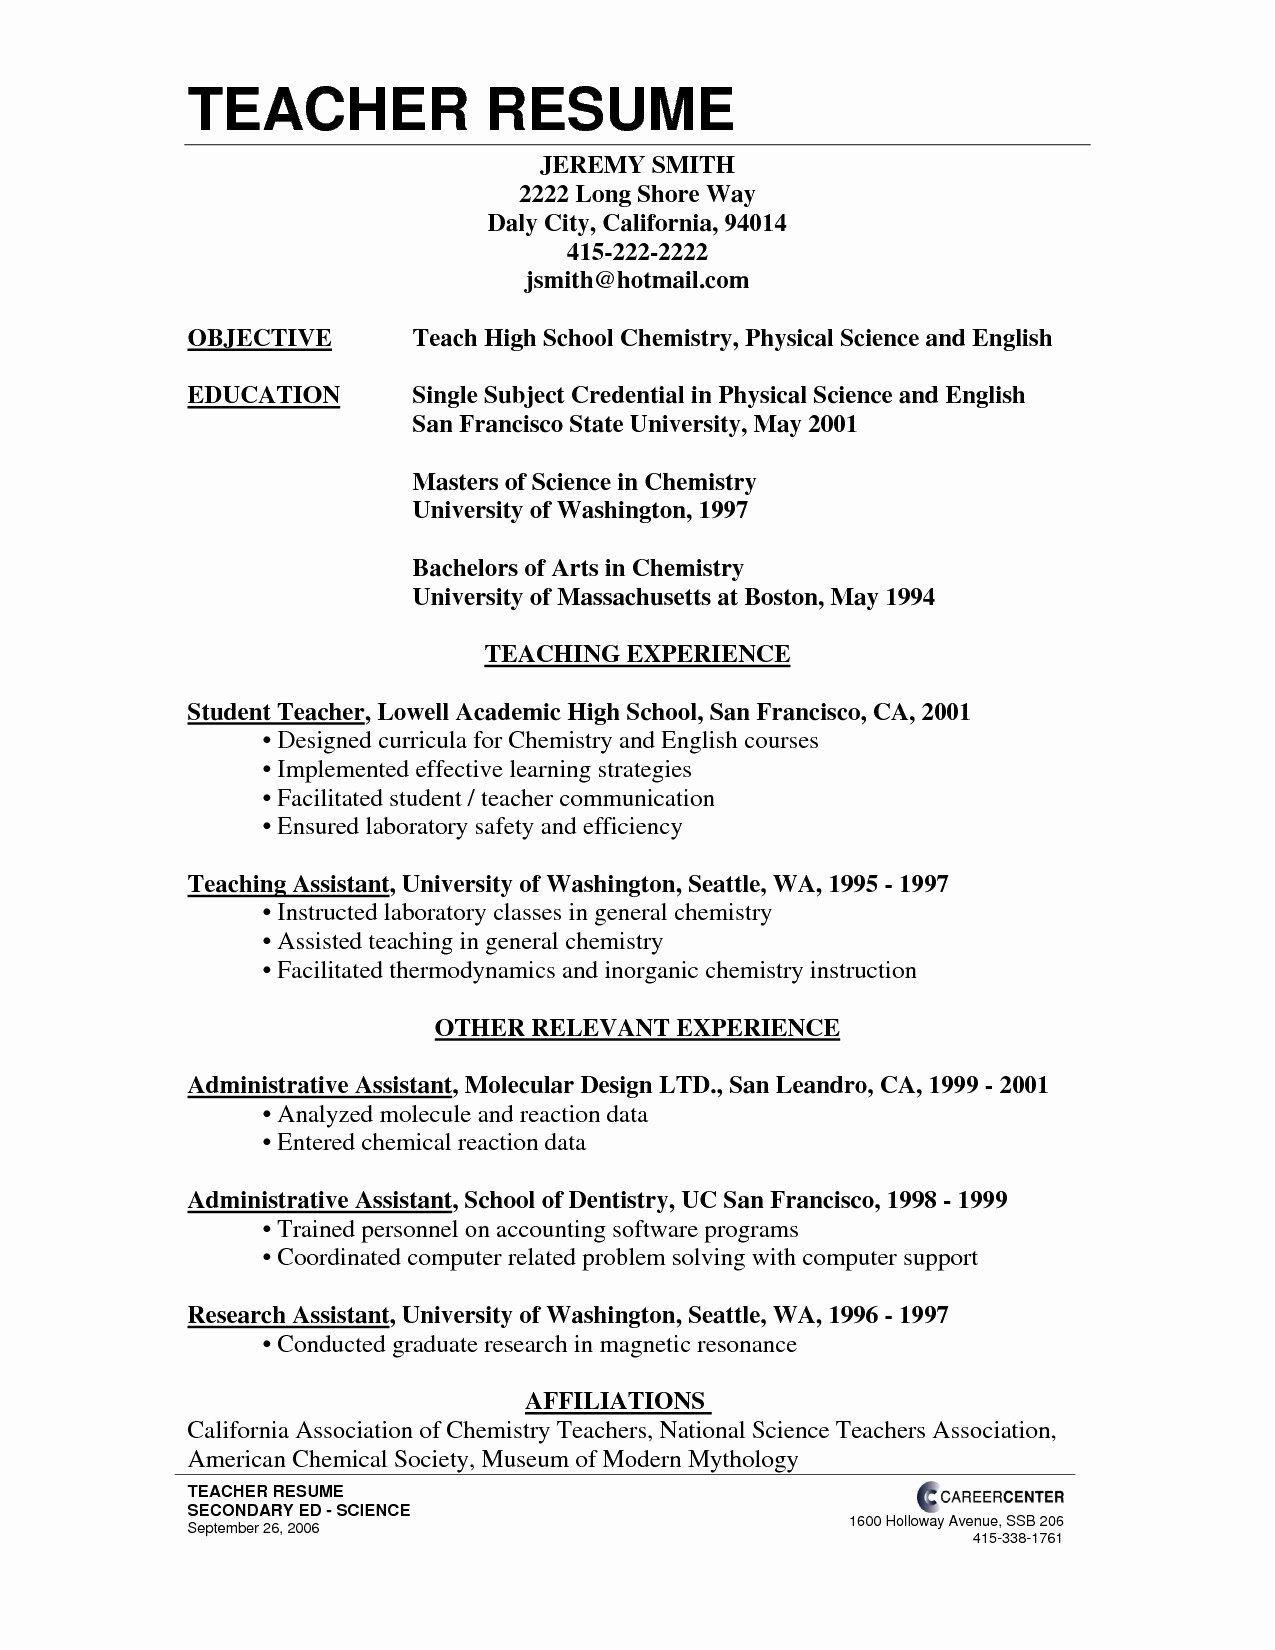 Free Modern Cover Letter Template - Resume Cover Letter Example New Free Cover Letter Templates Examples